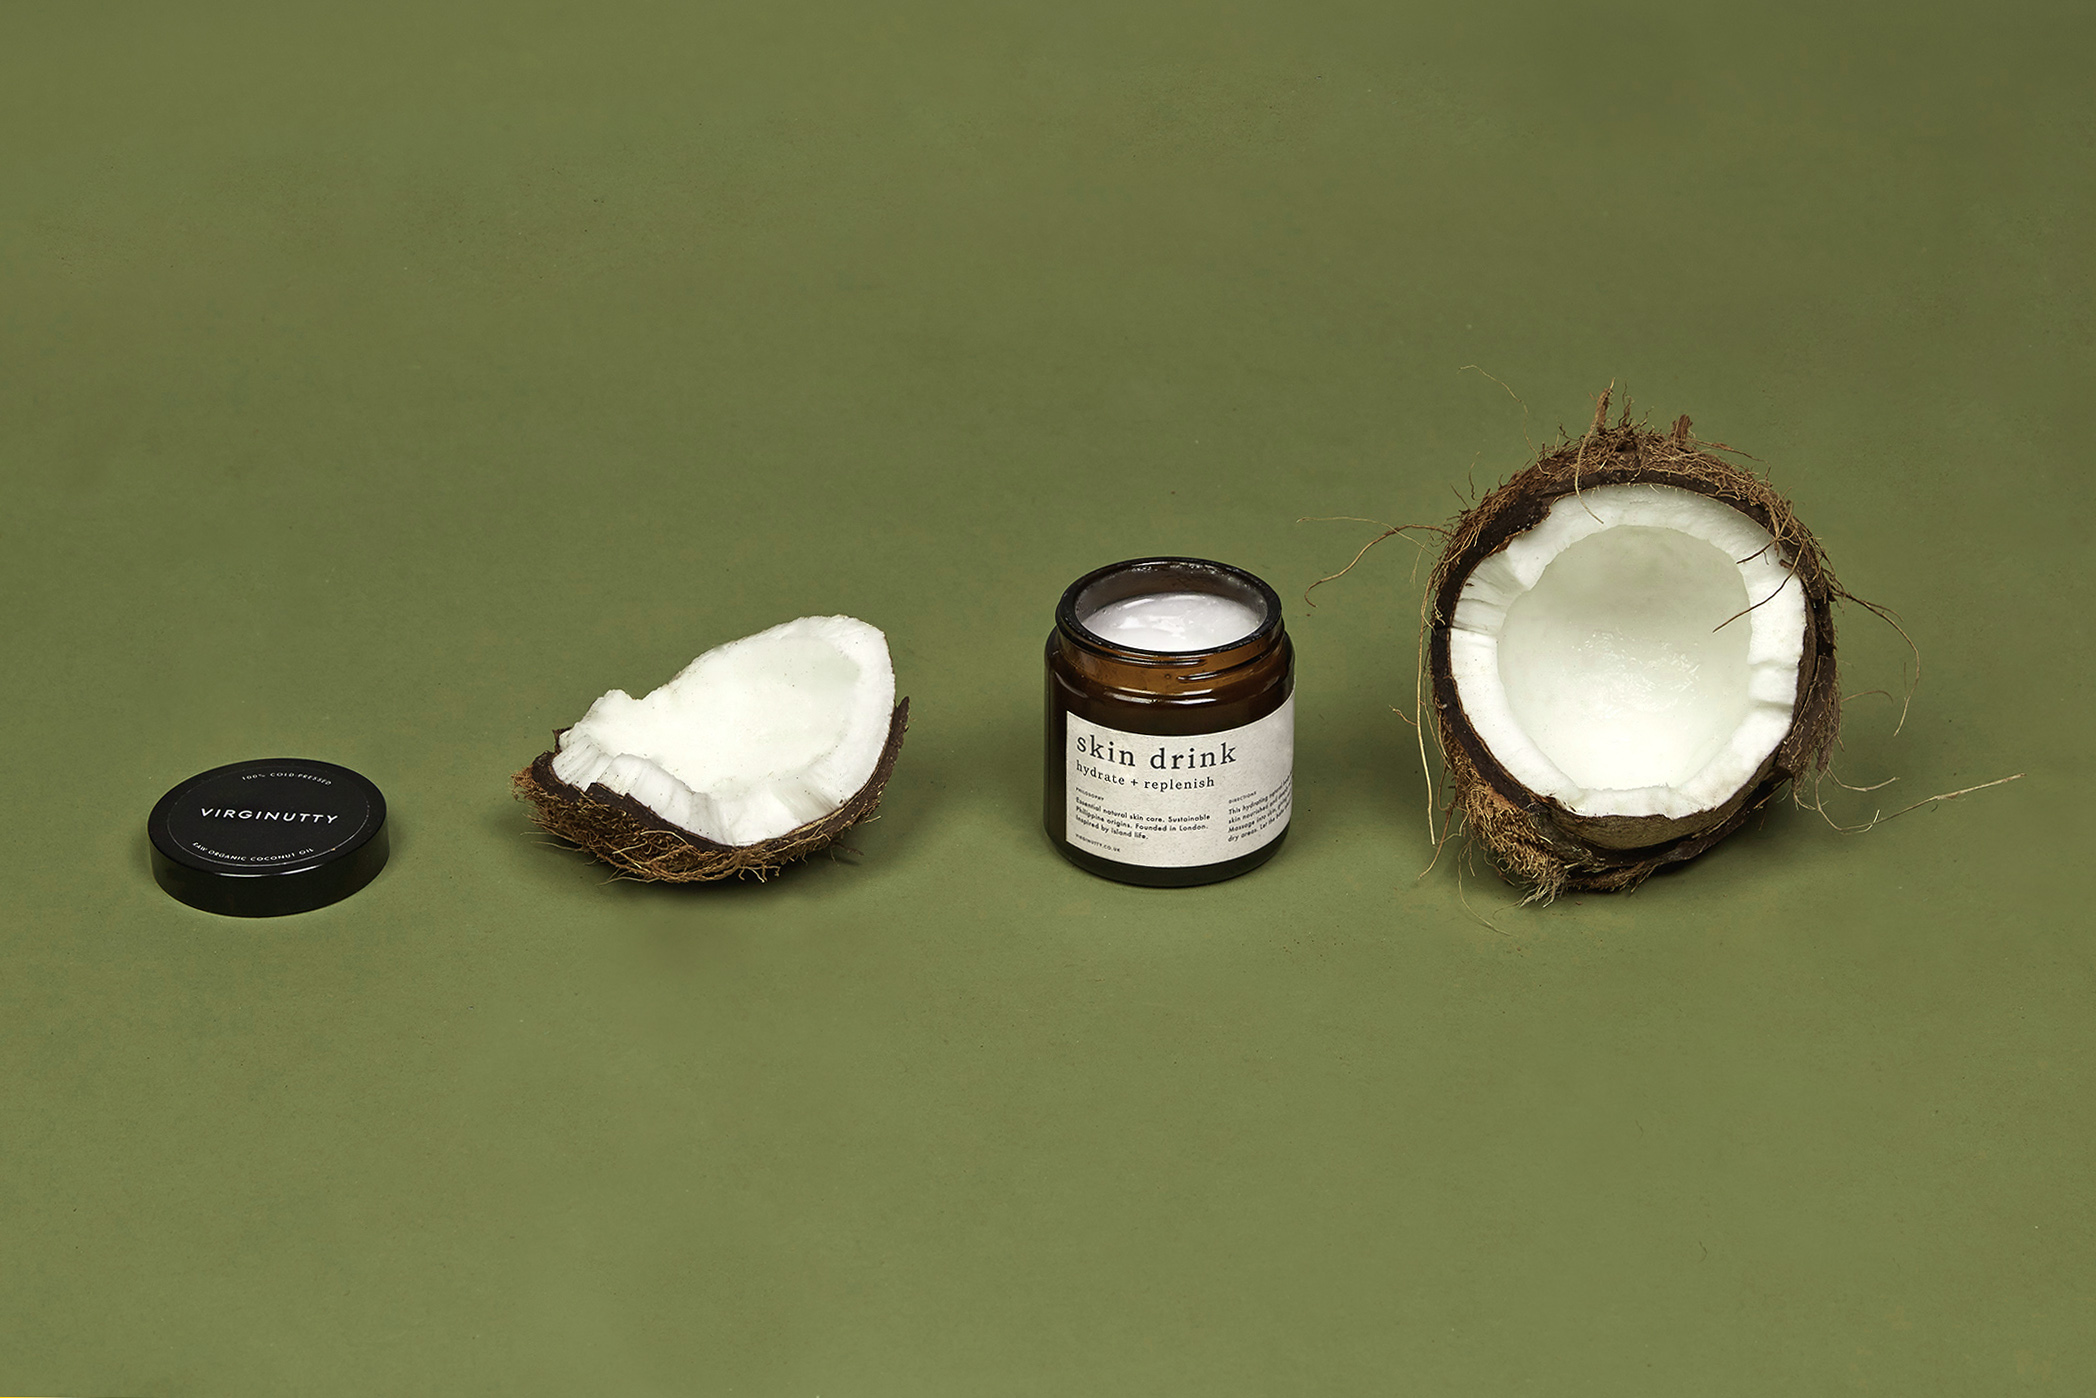 four items spaced equally apart on a green surface: a coconut split into half and Virginutty's Skin Drink with the lid taken off and placed separately